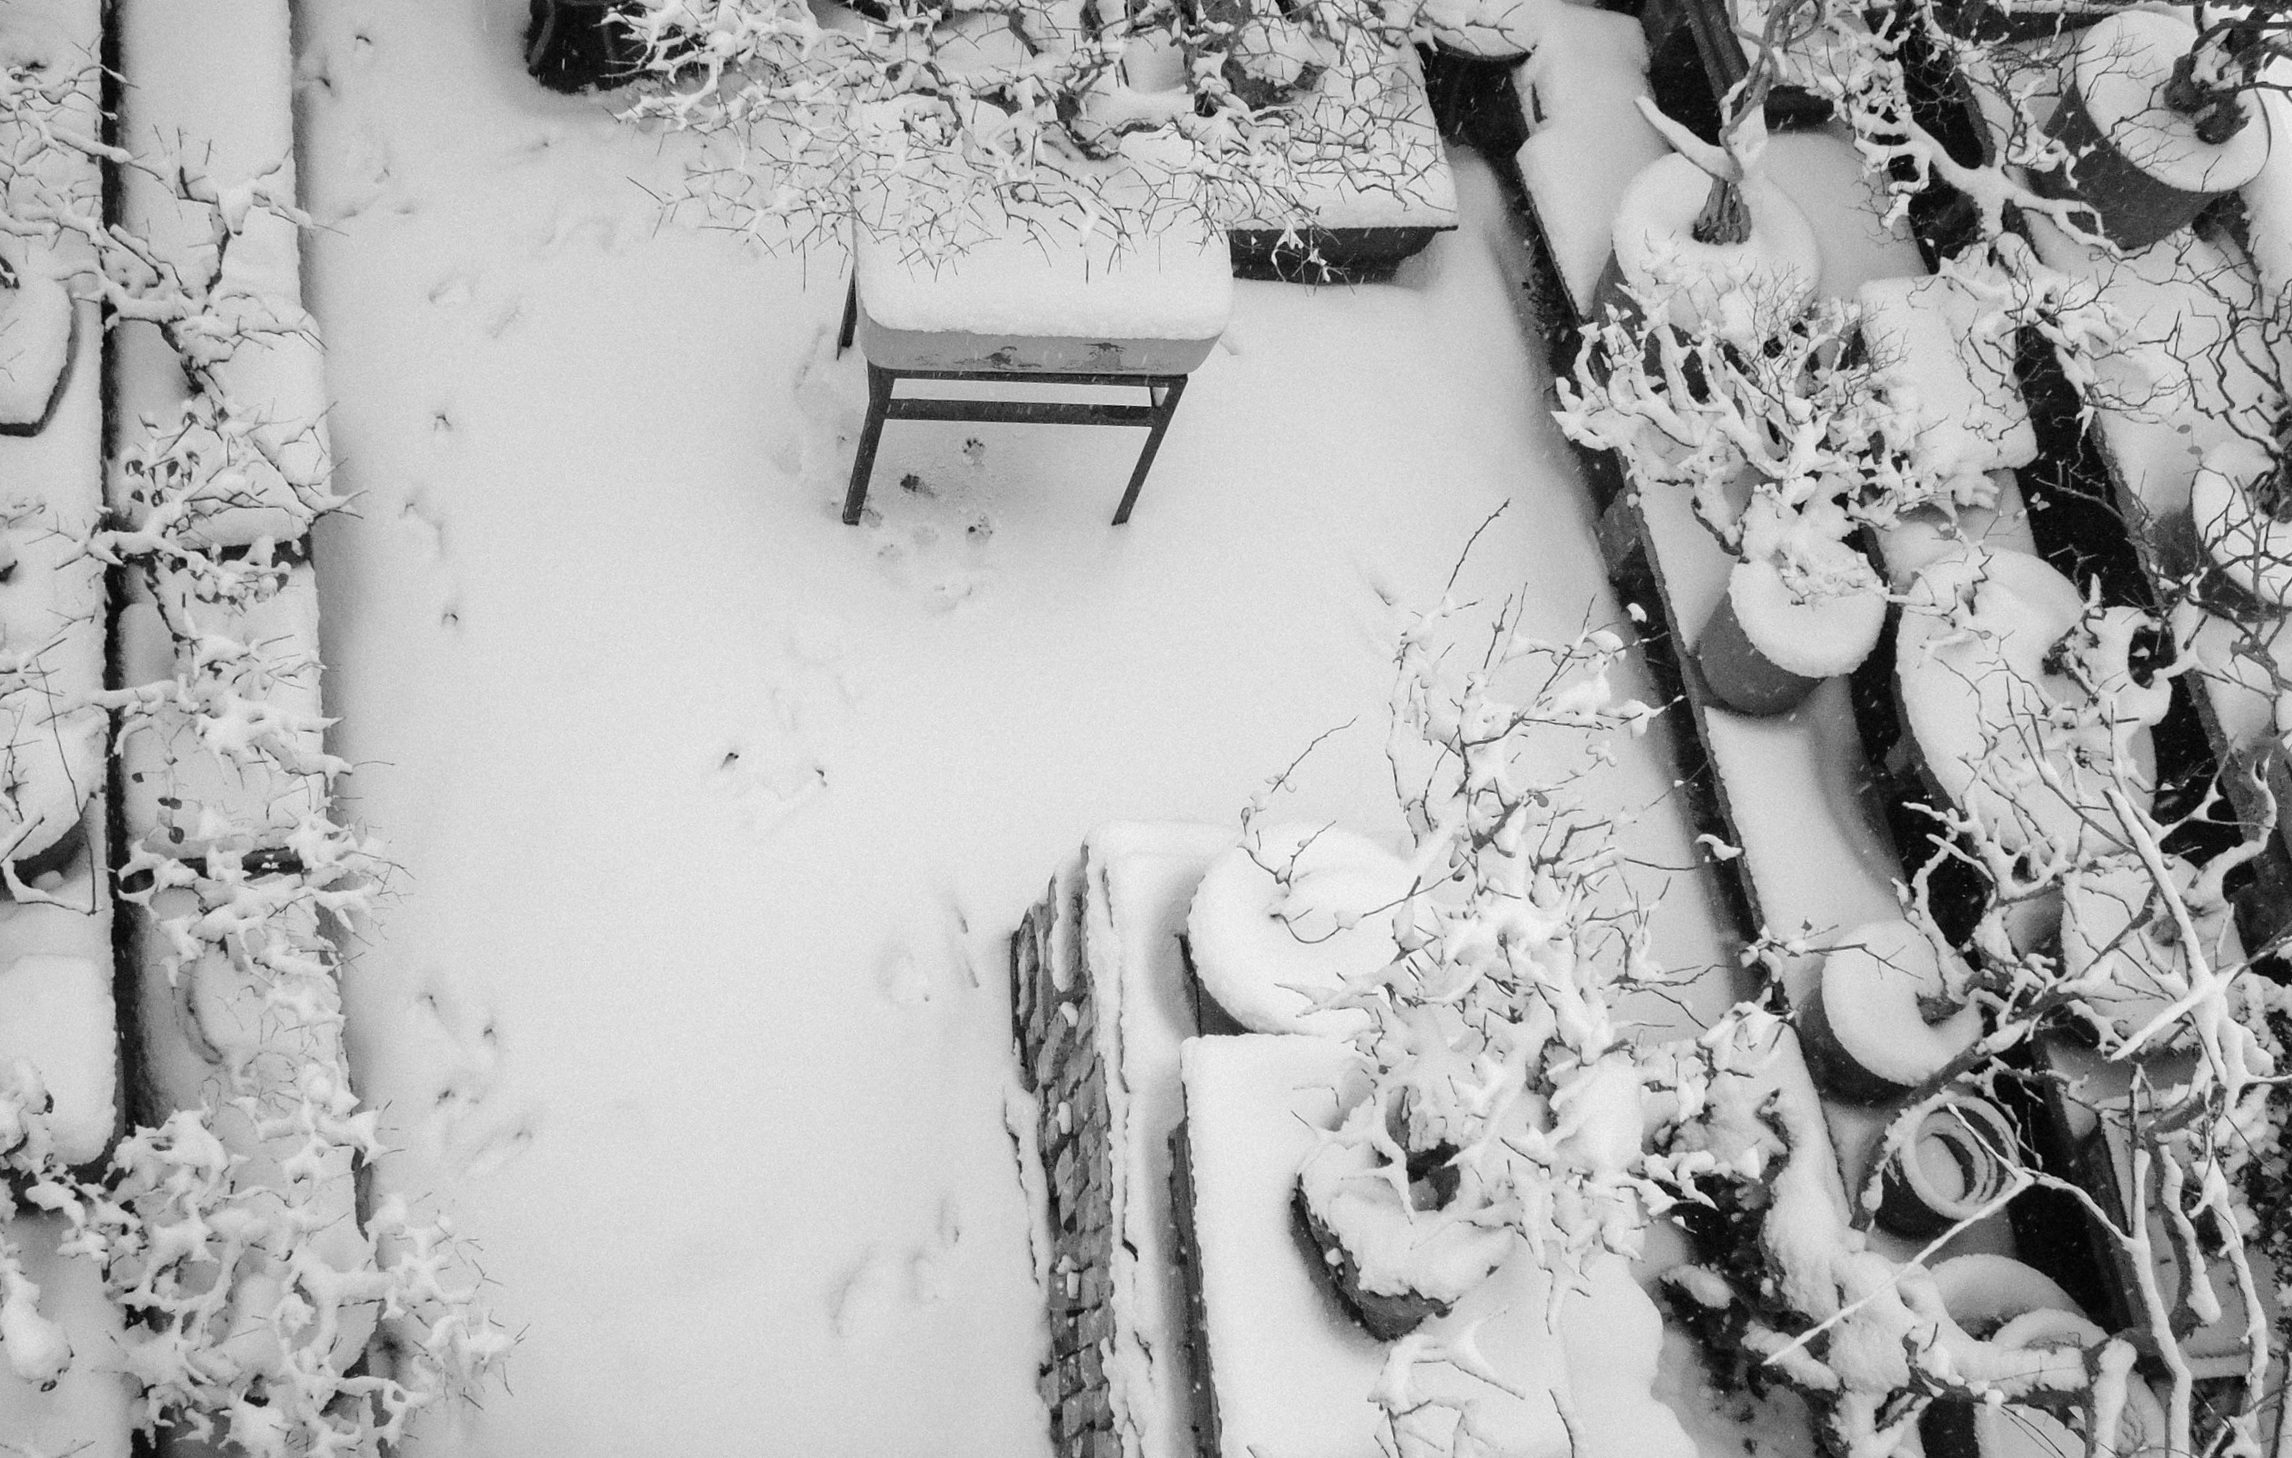 Second small garden of the old house and grandpa's bonsai in snow, 2002